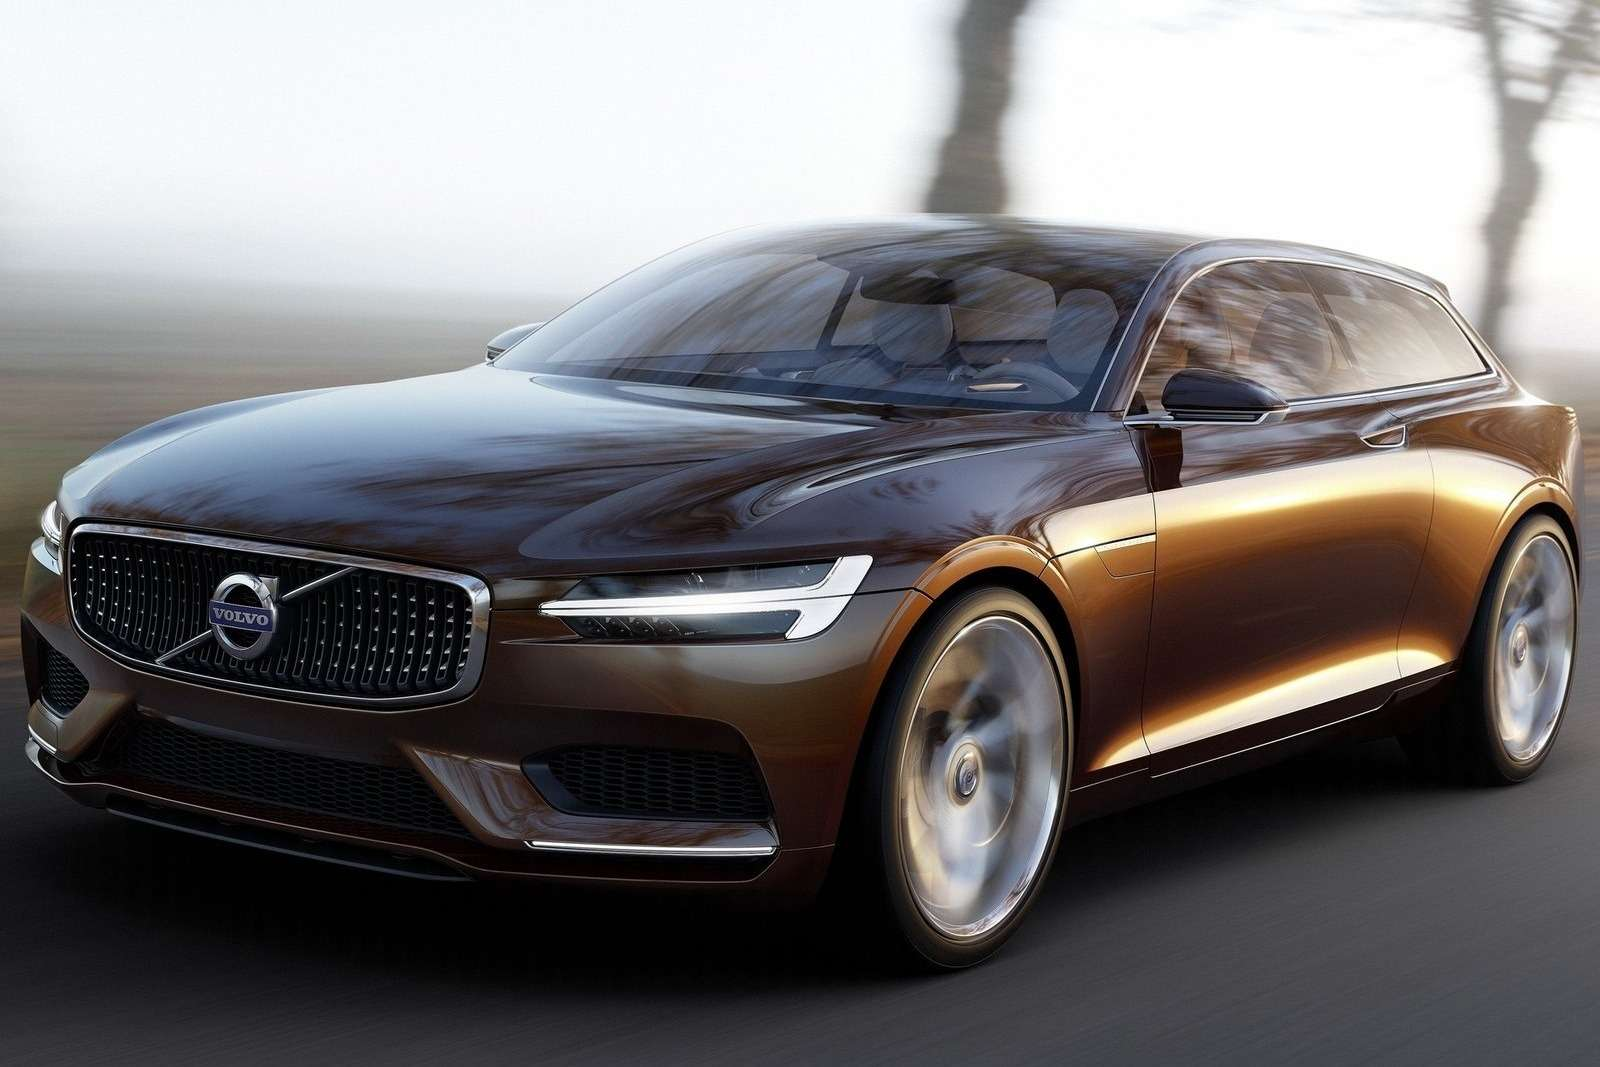 Volvo-Estate_Concept_2014_1600x1200_wallpaper_02